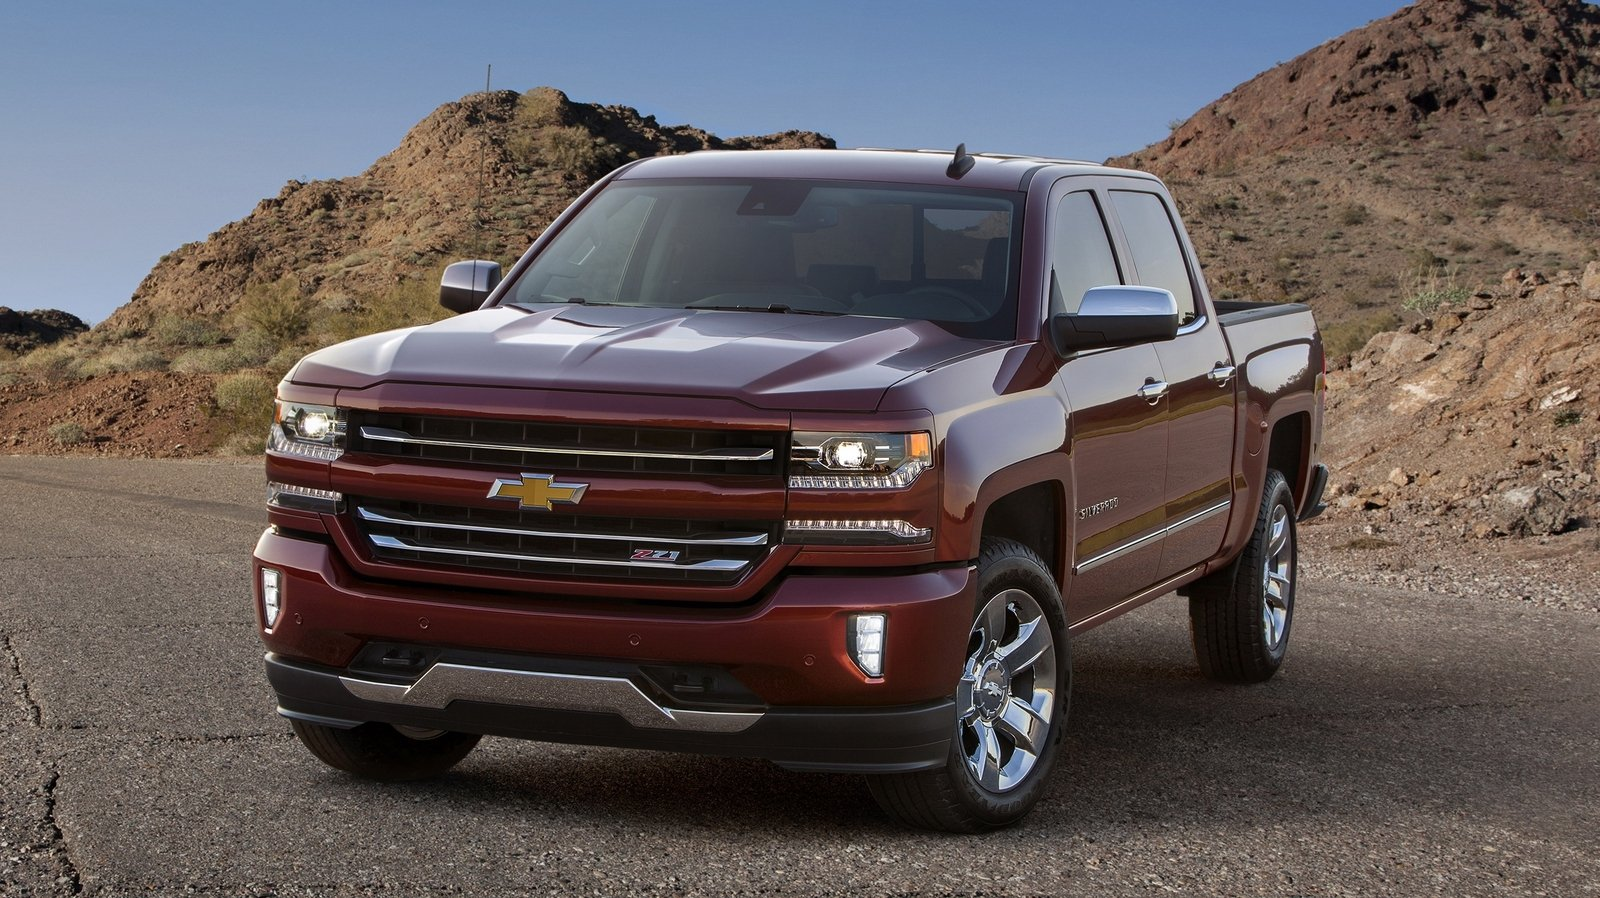 Silverado 2008 chevrolet silverado mpg : 2016 Chevrolet Silverado Review - Top Speed